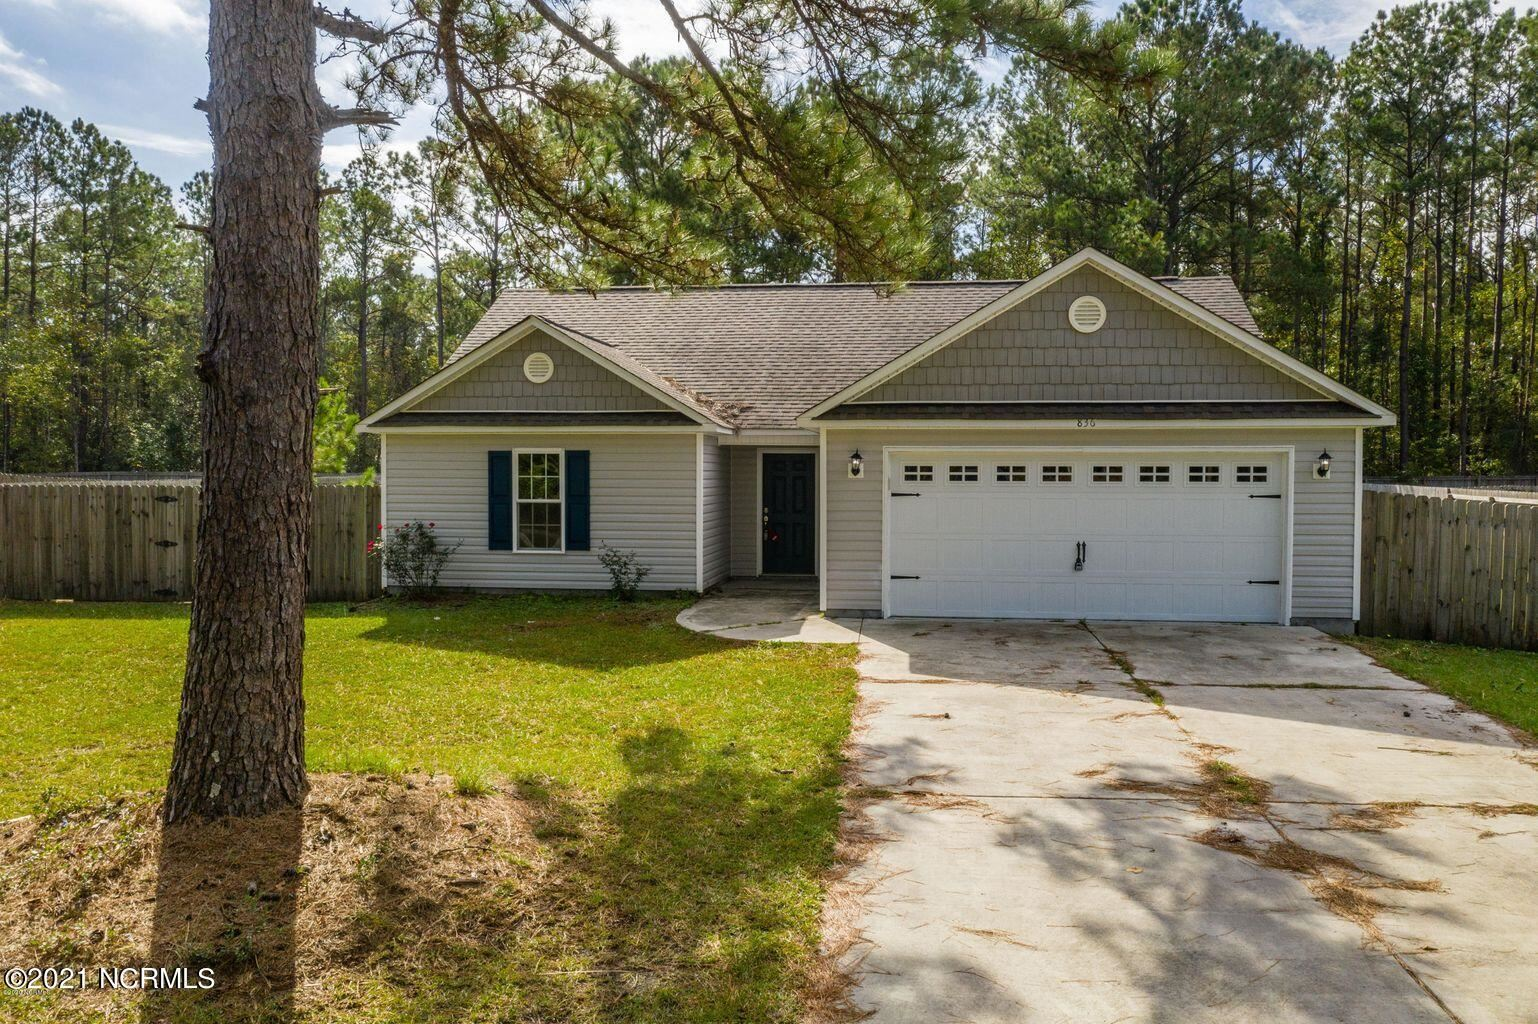 Photo of 836 Old Folkstone Road, Sneads Ferry, NC 28460 (MLS # 100292254)